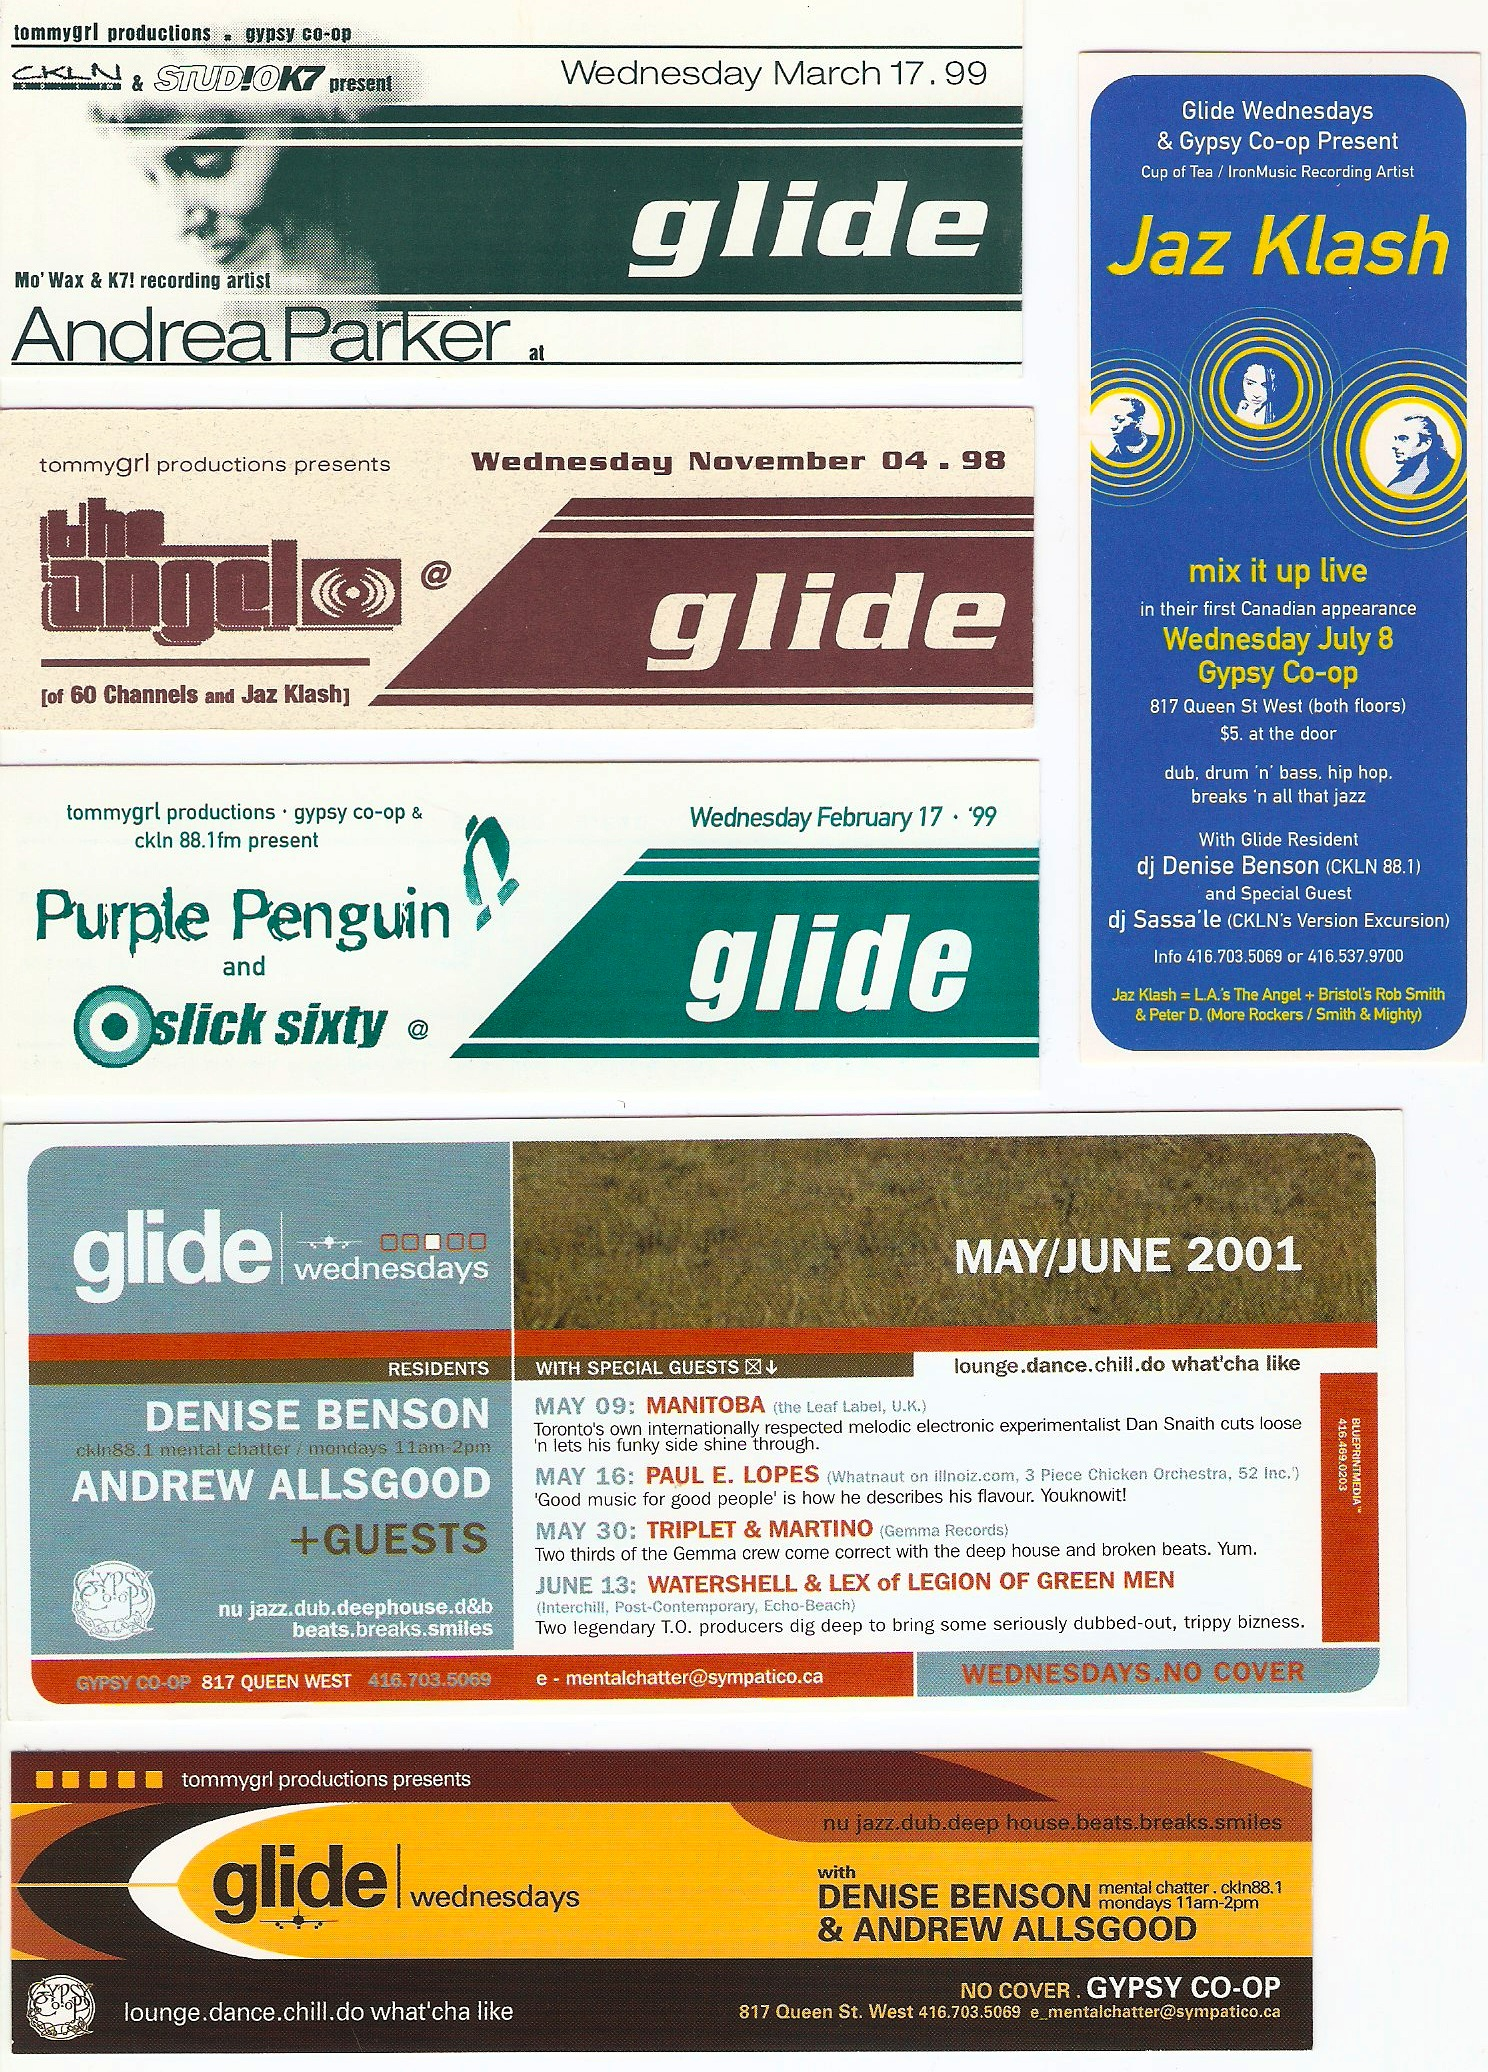 Collection of Glide Wednesdays flyers. Courtesy of Denise Benson.